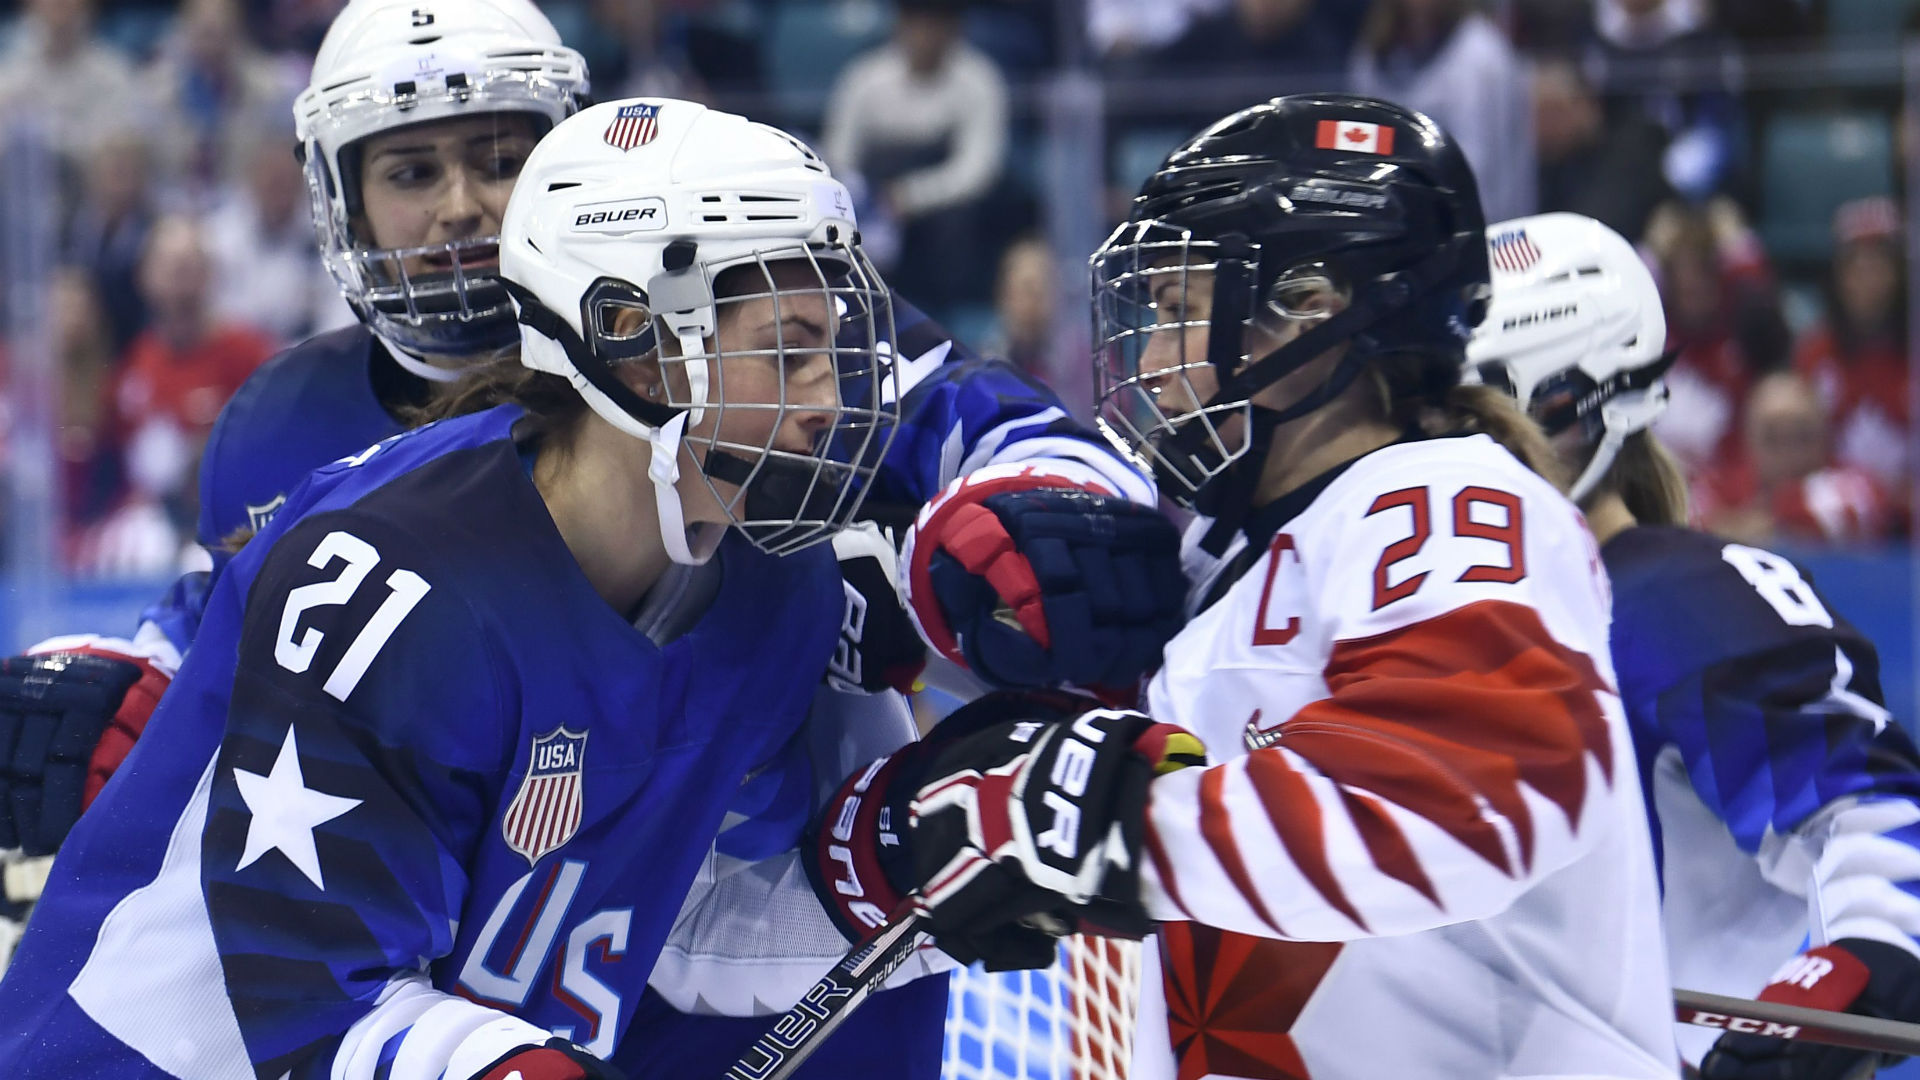 CWHL 2018-19 season preview: former foes, now teammates Hilary Knight, Marie-Philip Poulin highlight offseason moves